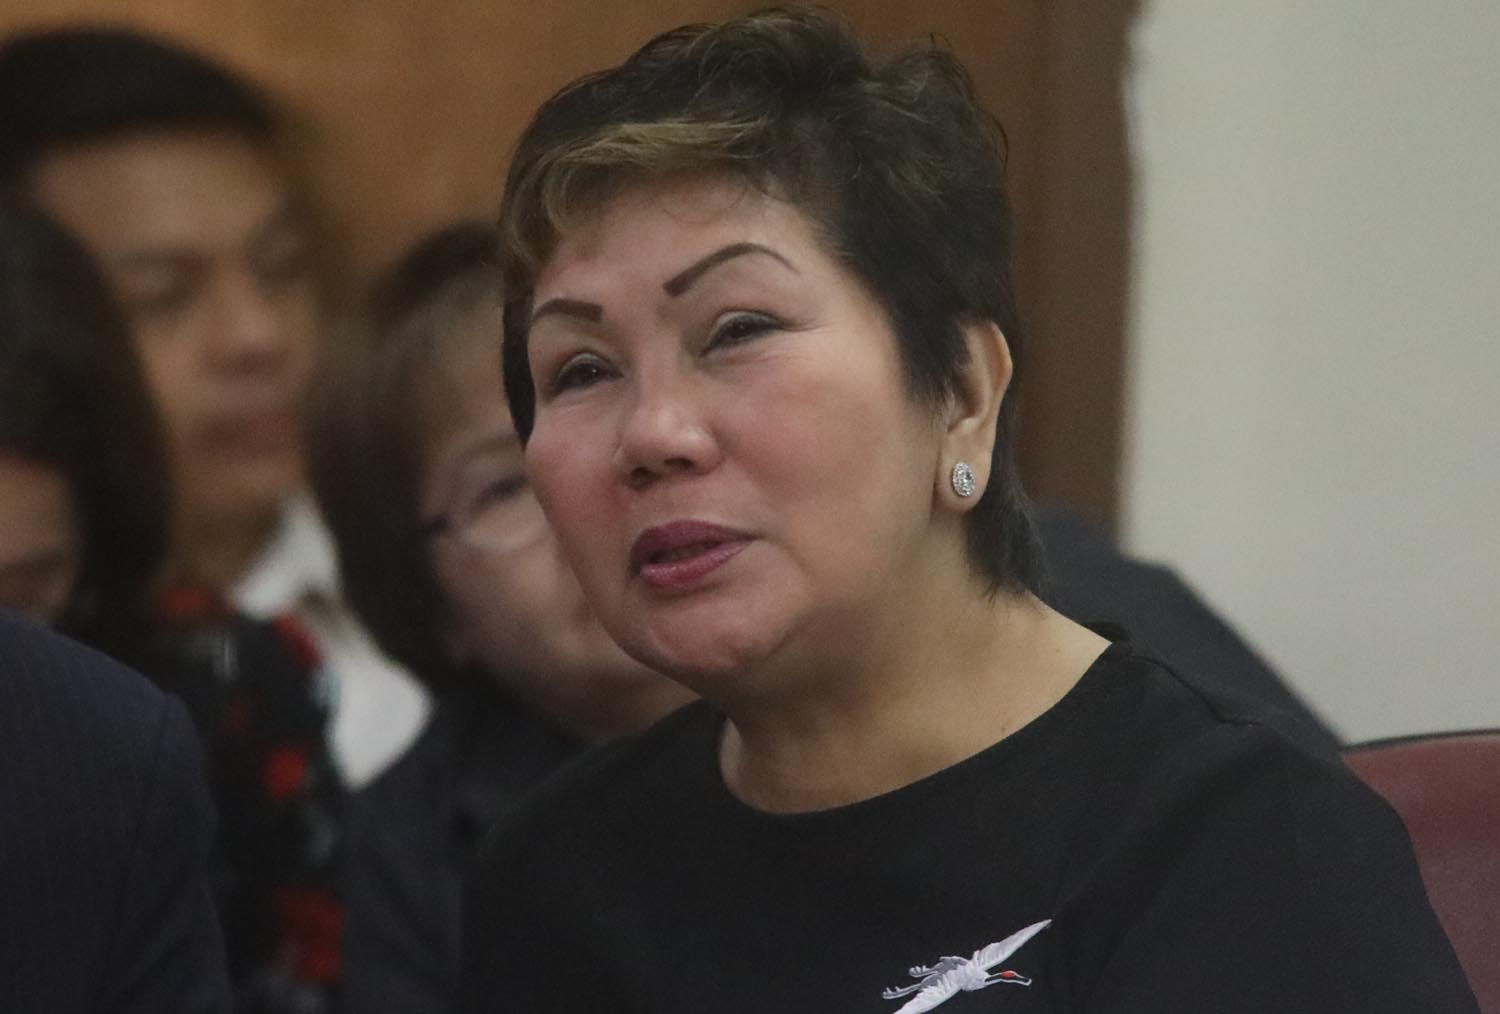 INTERFERENCE. Court of Appeals (CA) Associate Justice Remedios Salazar Fernando says Chief Justice Maria Lourde's Sereno's 'interference' in a conflict between CA and the House of Representatives shows 'lack of delicadeza.' Photo by Darren Langit/Rappler